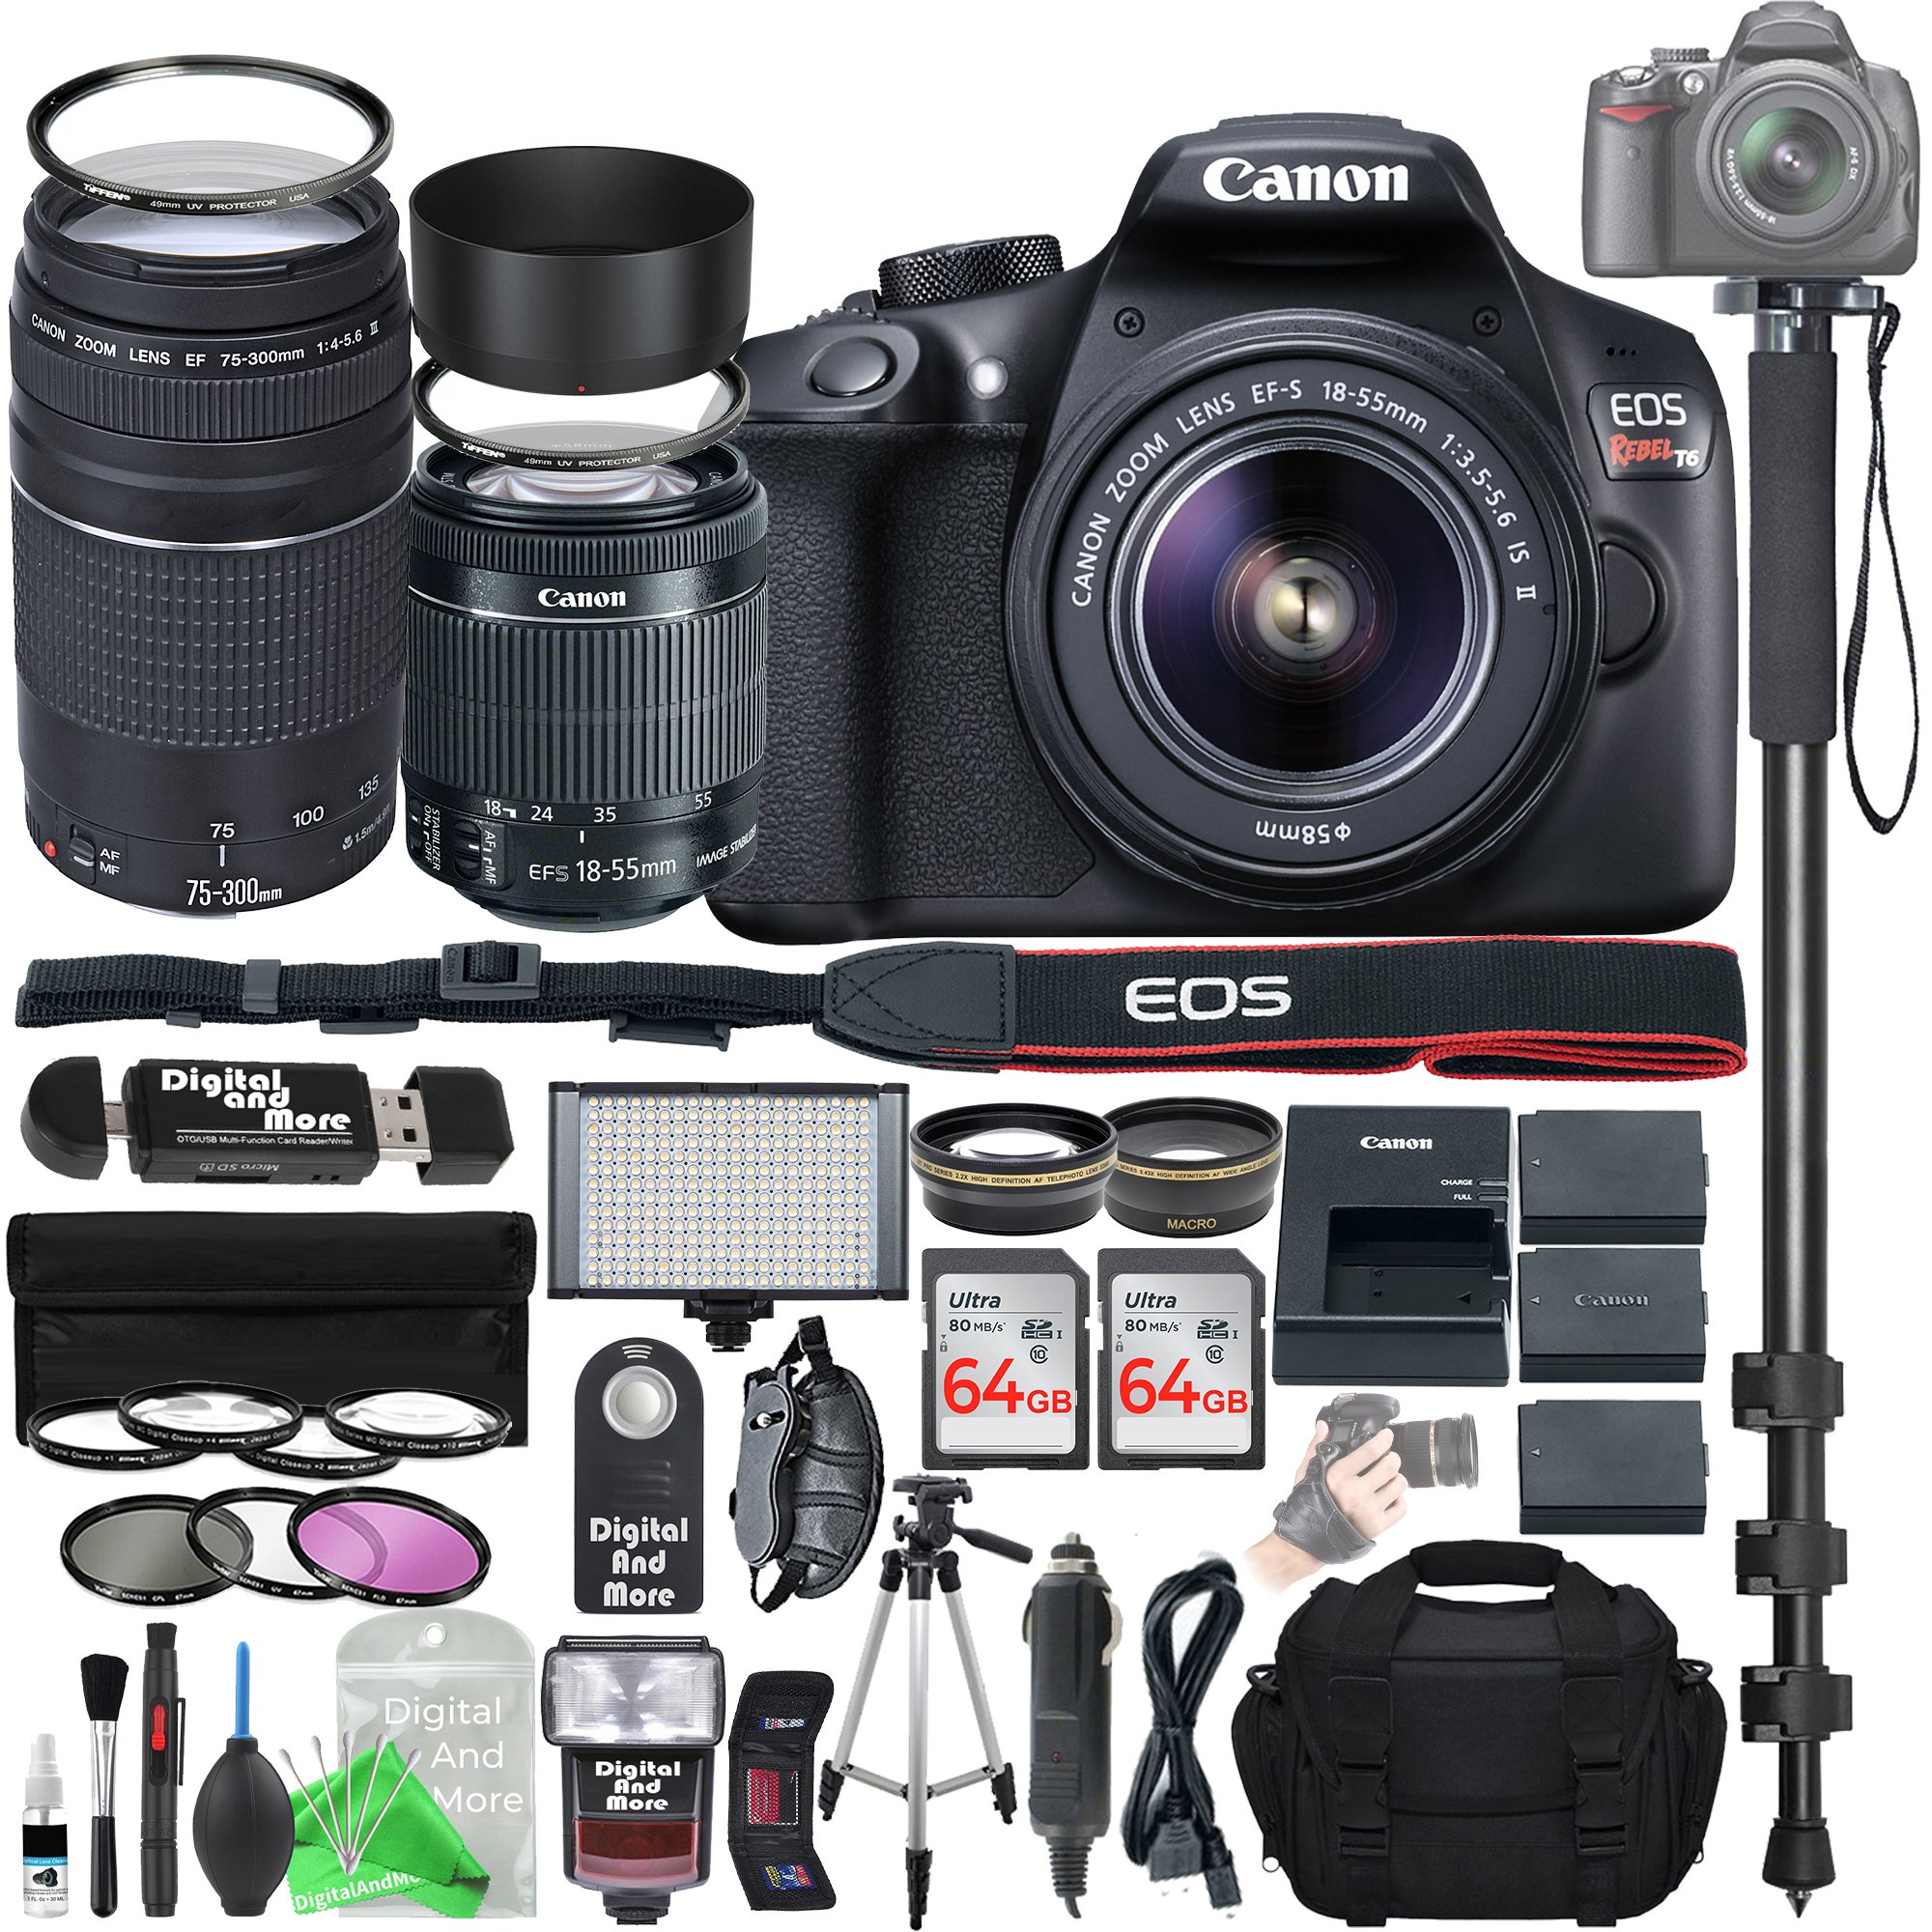 Canon EOS Rebel T6 Digital SLR Camera with 18-55mm EF-S f/3.5-5.6 IS II Lens & EF 75-300mm f/4-5.6 III Lens + Ultimate Platinum Bundle